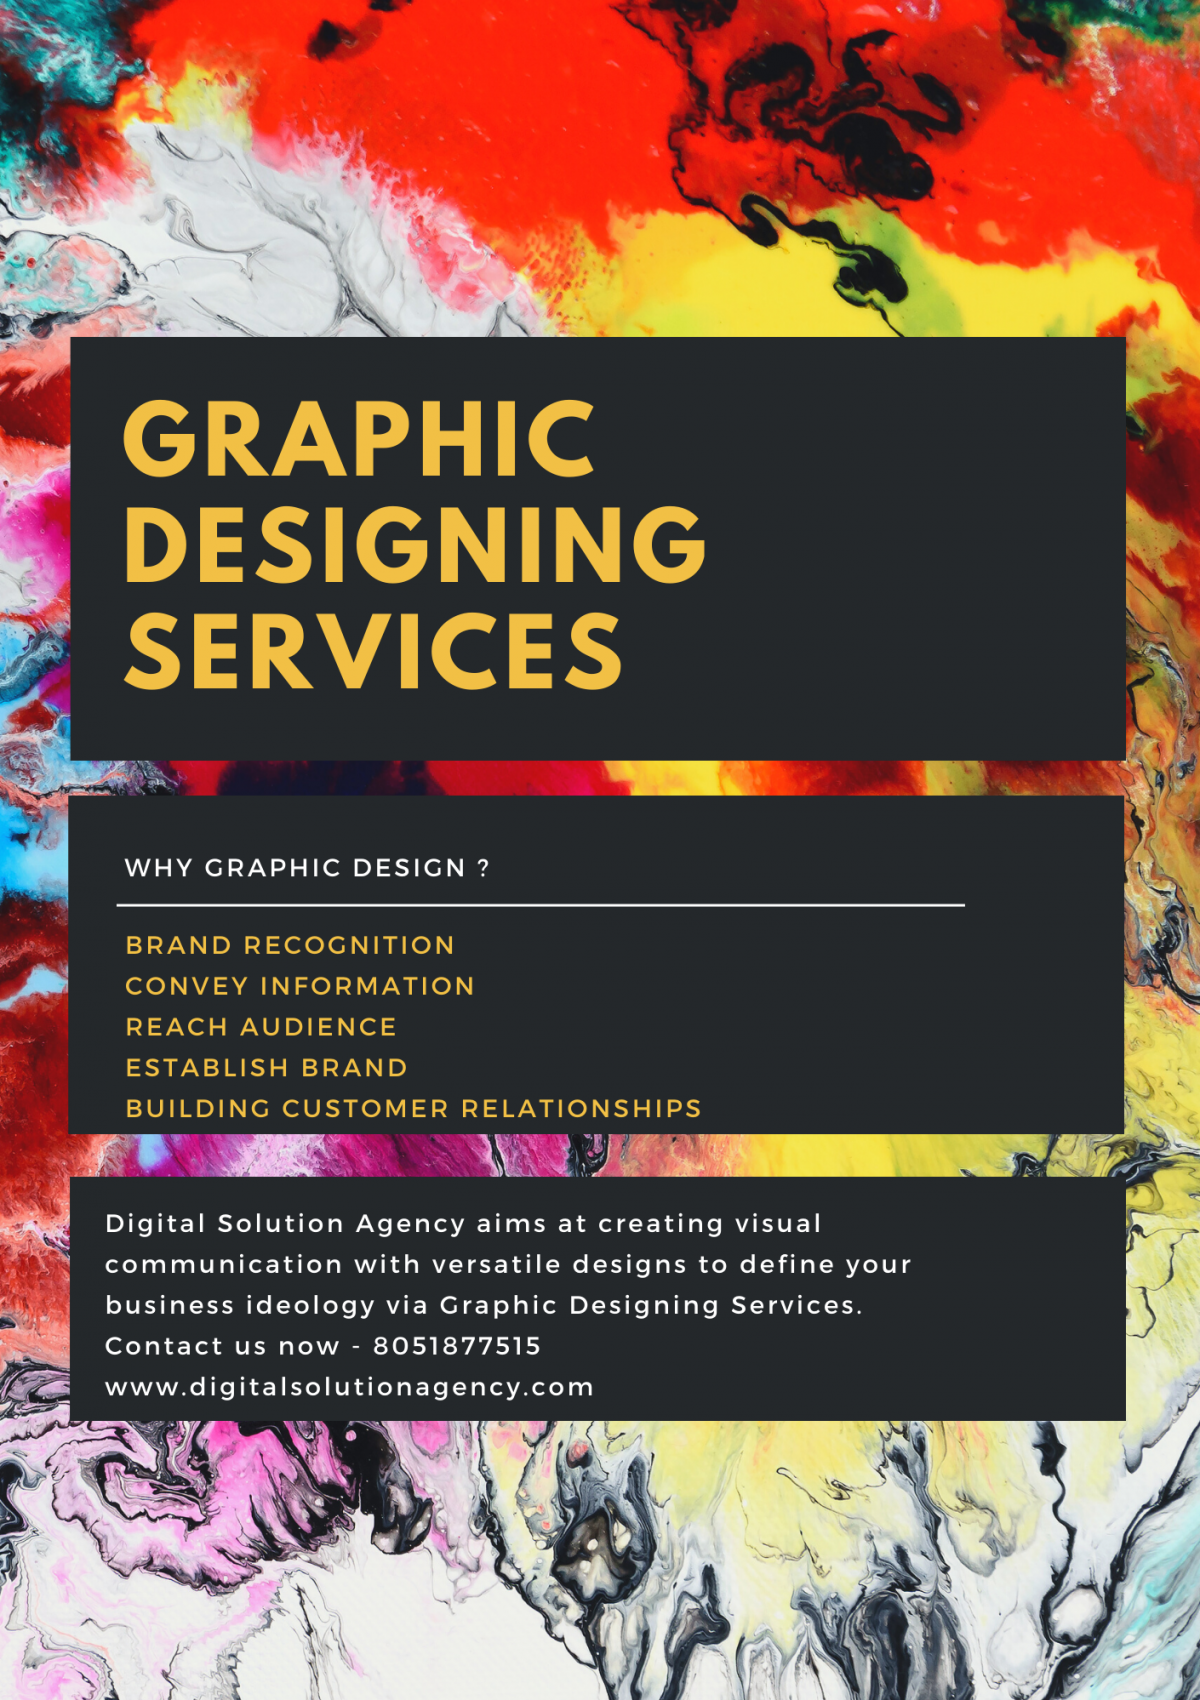 Graphics designing company in Patna and delhi